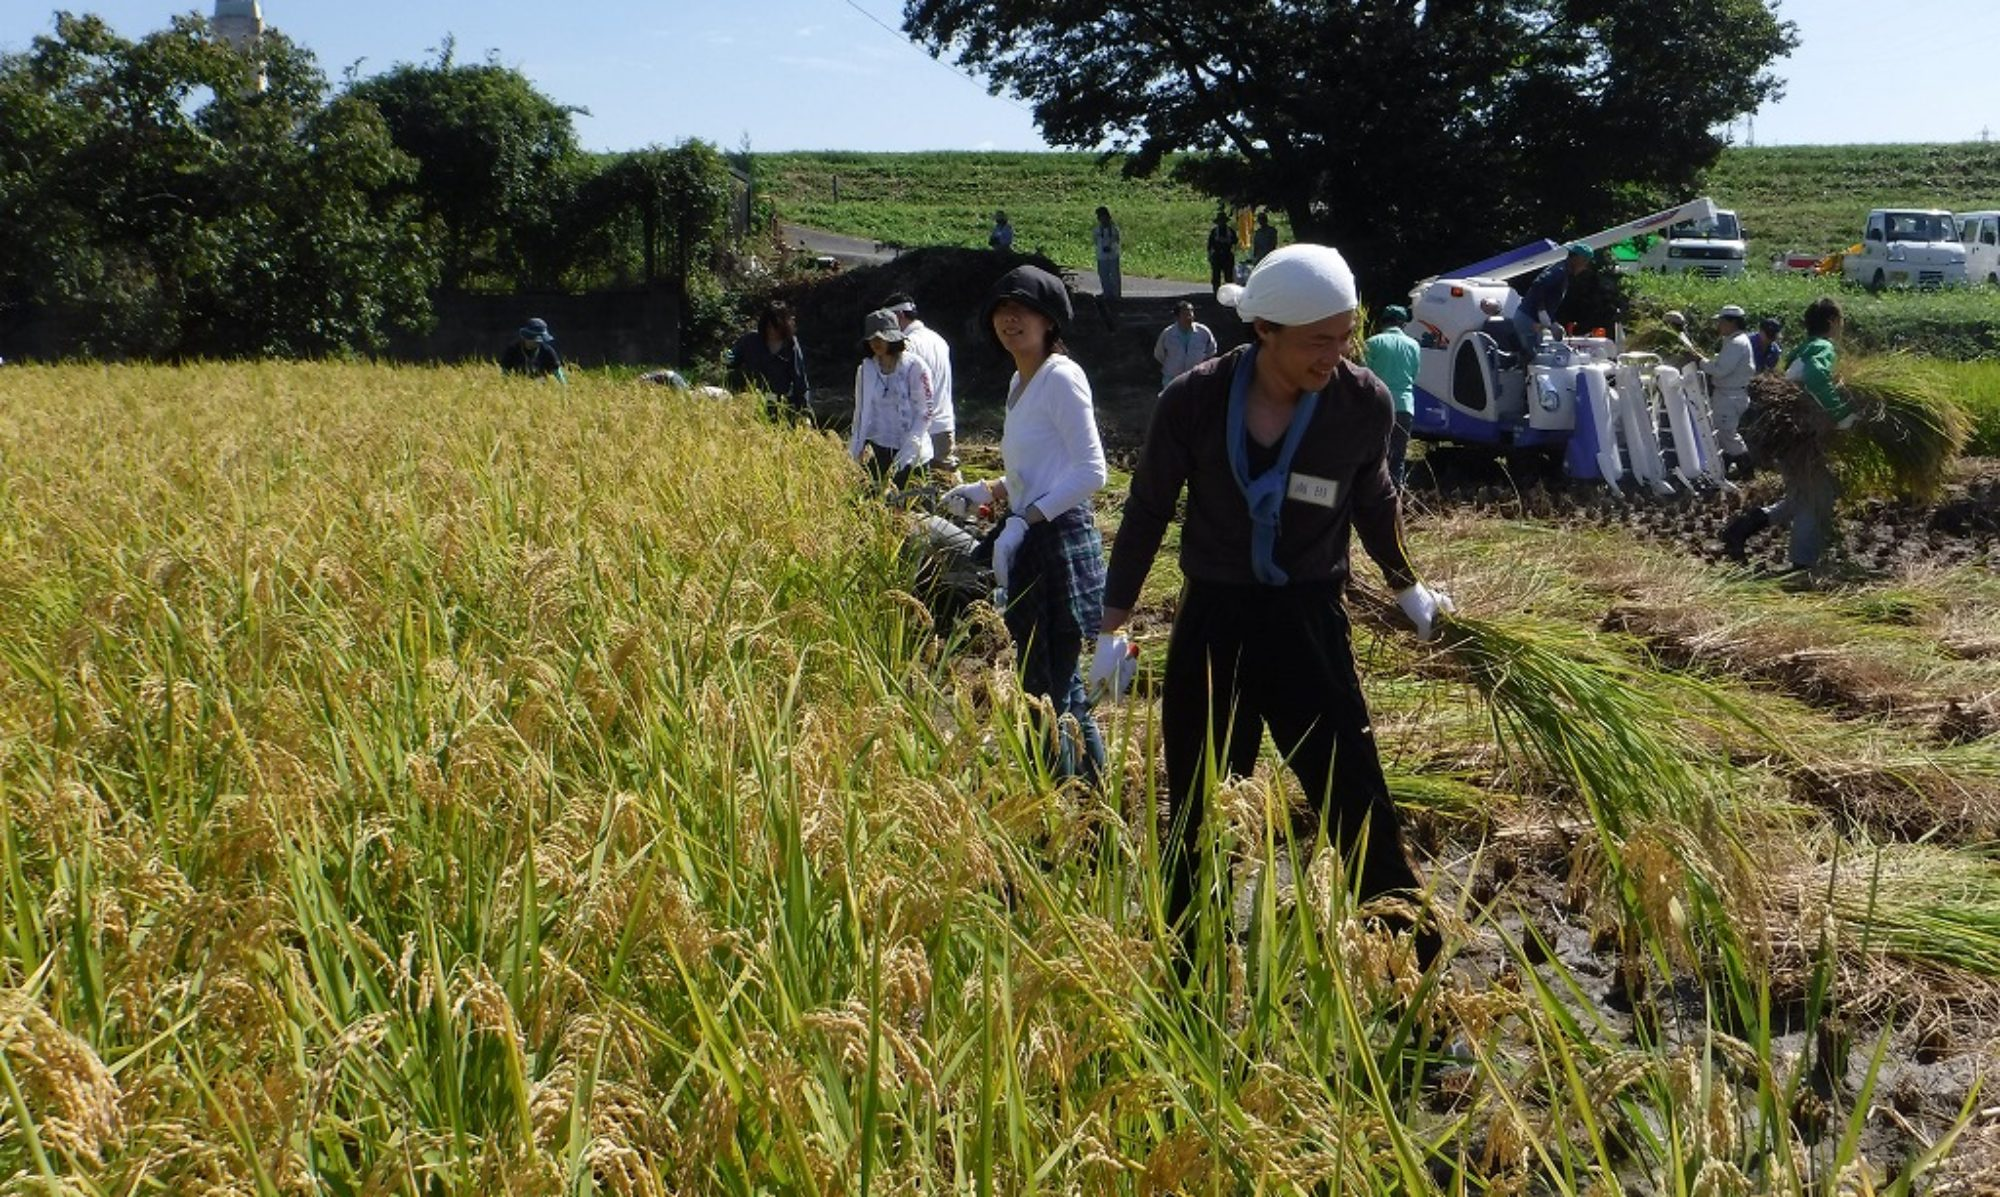 Kuramachi Project 2017 - Promoting Town of Fushimi with Paddy Fields and Sake Breweries